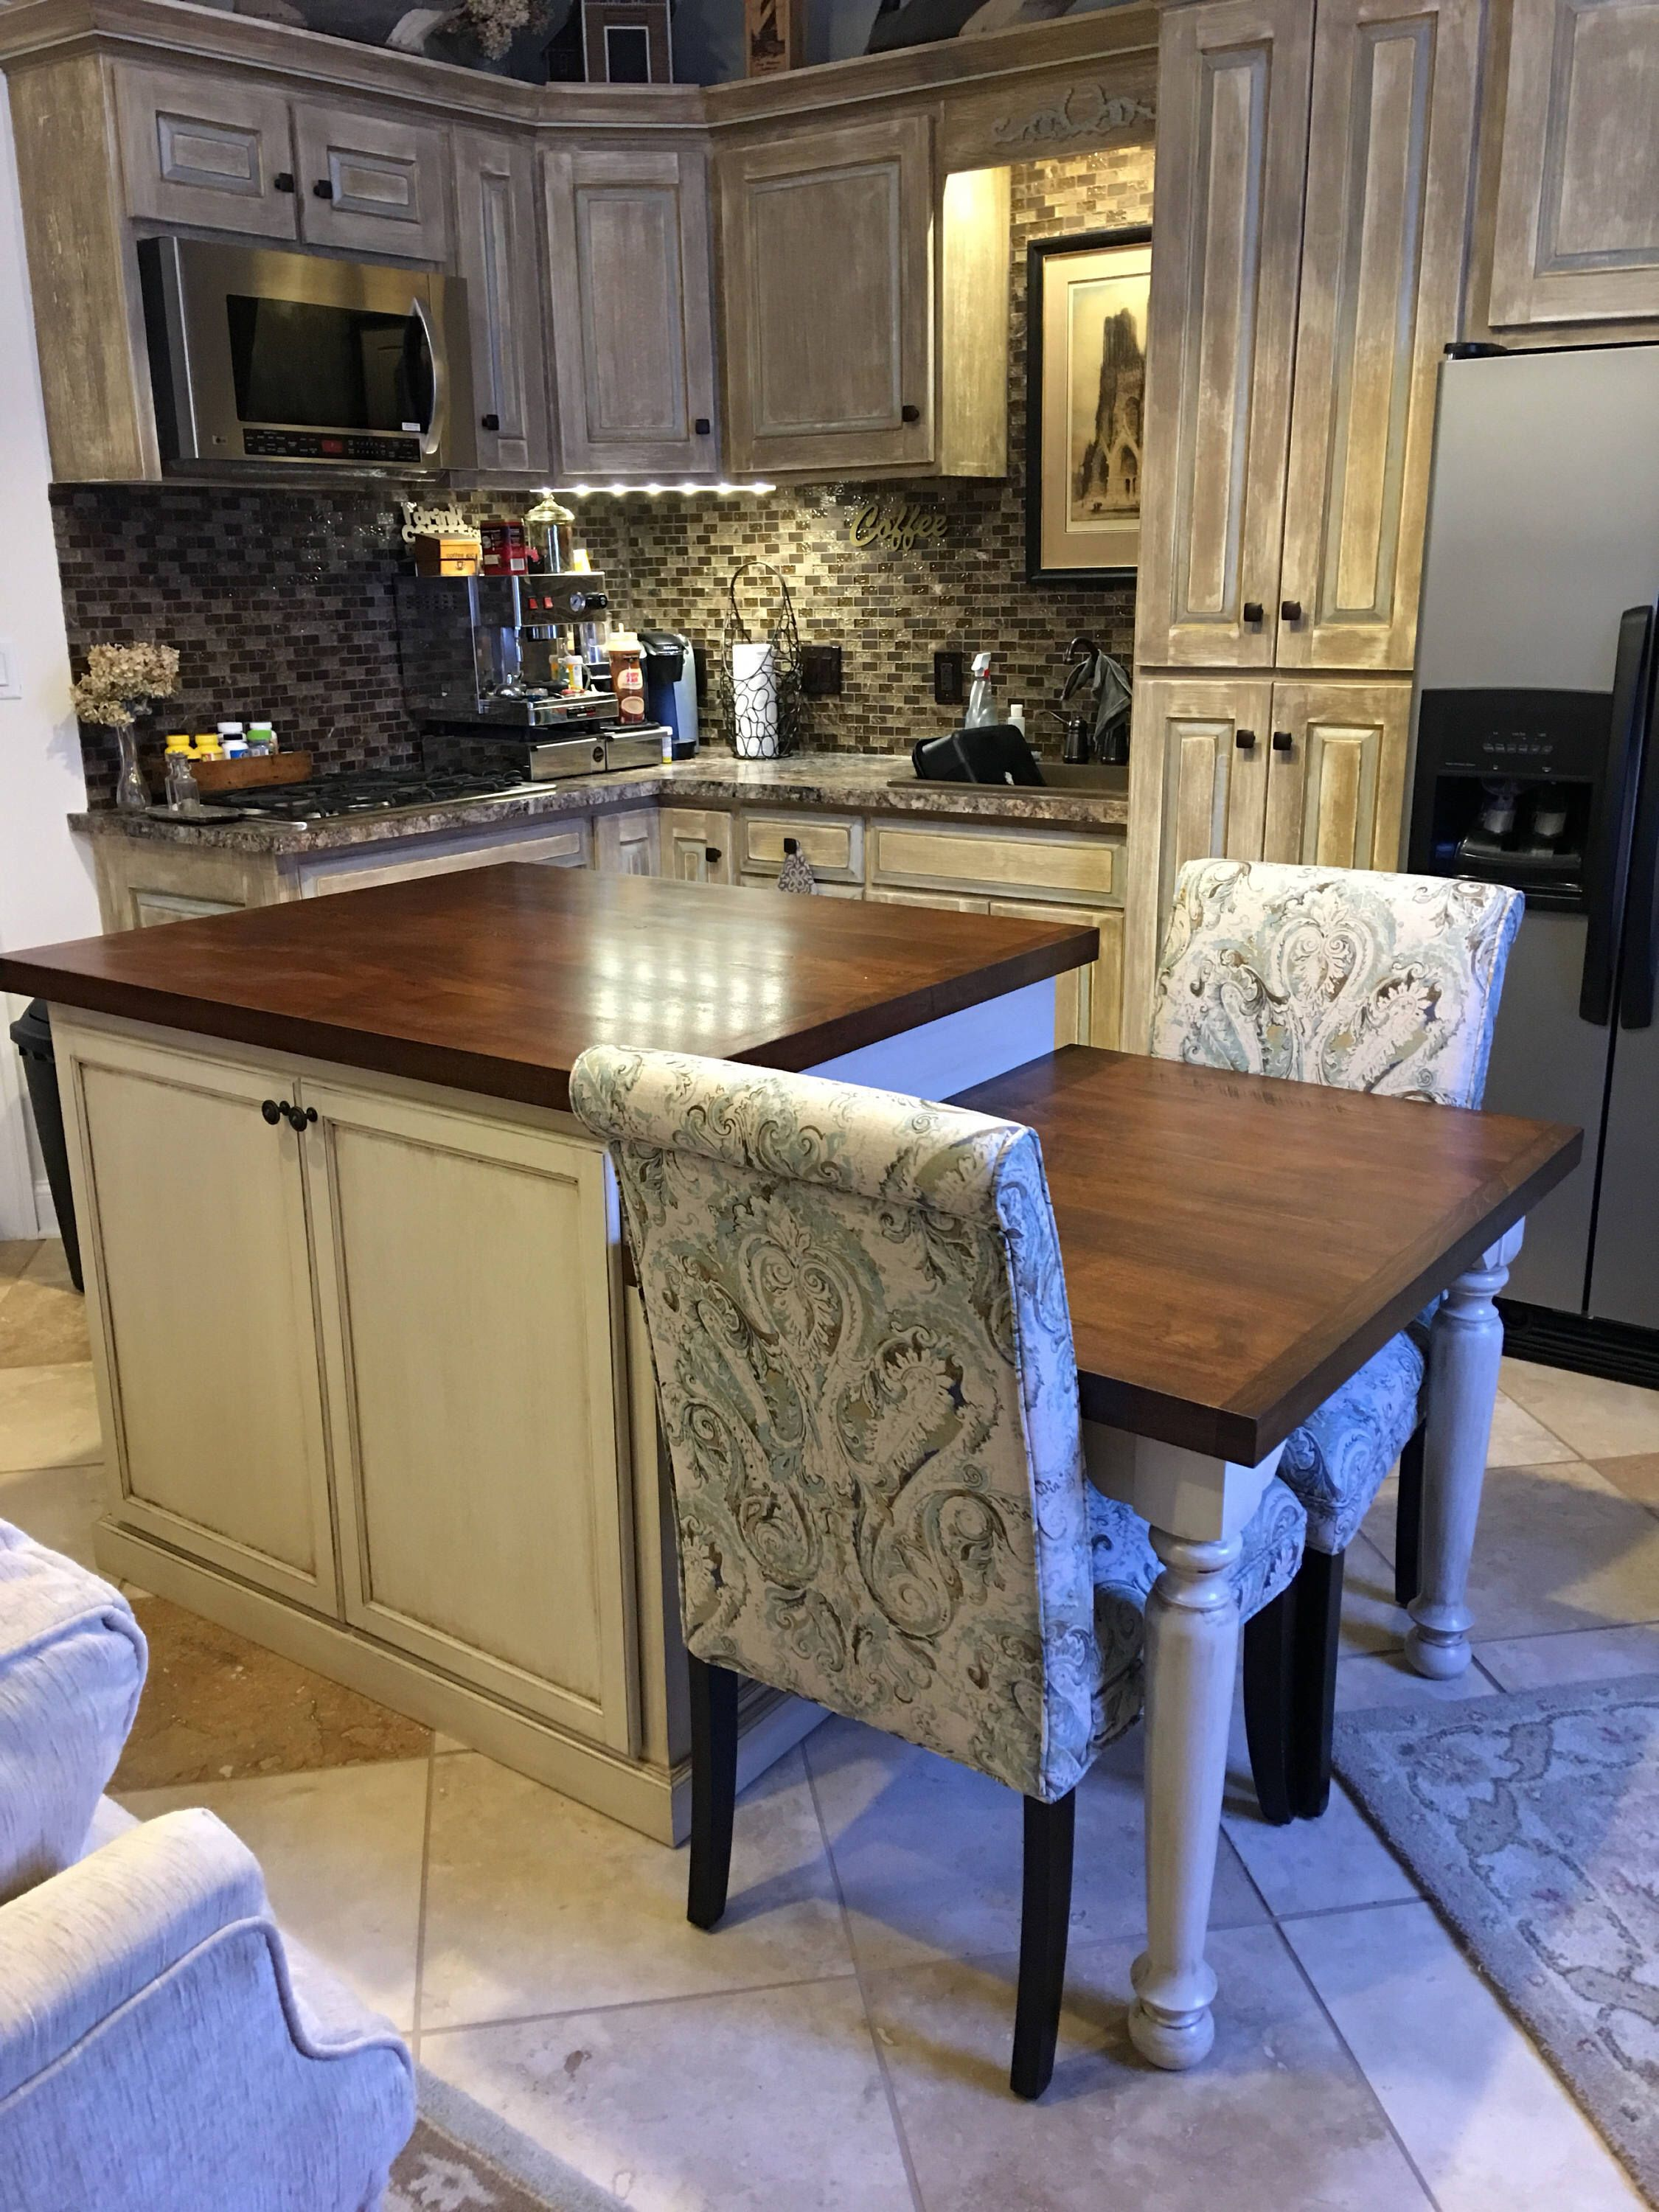 Kitchen Island With Seating Area By Worthysrunfurniture On Etsy Https Www Etsy Com L Kitchen Island Table Rustic Kitchen Design Interior Design Kitchen Small Table height kitchen islands